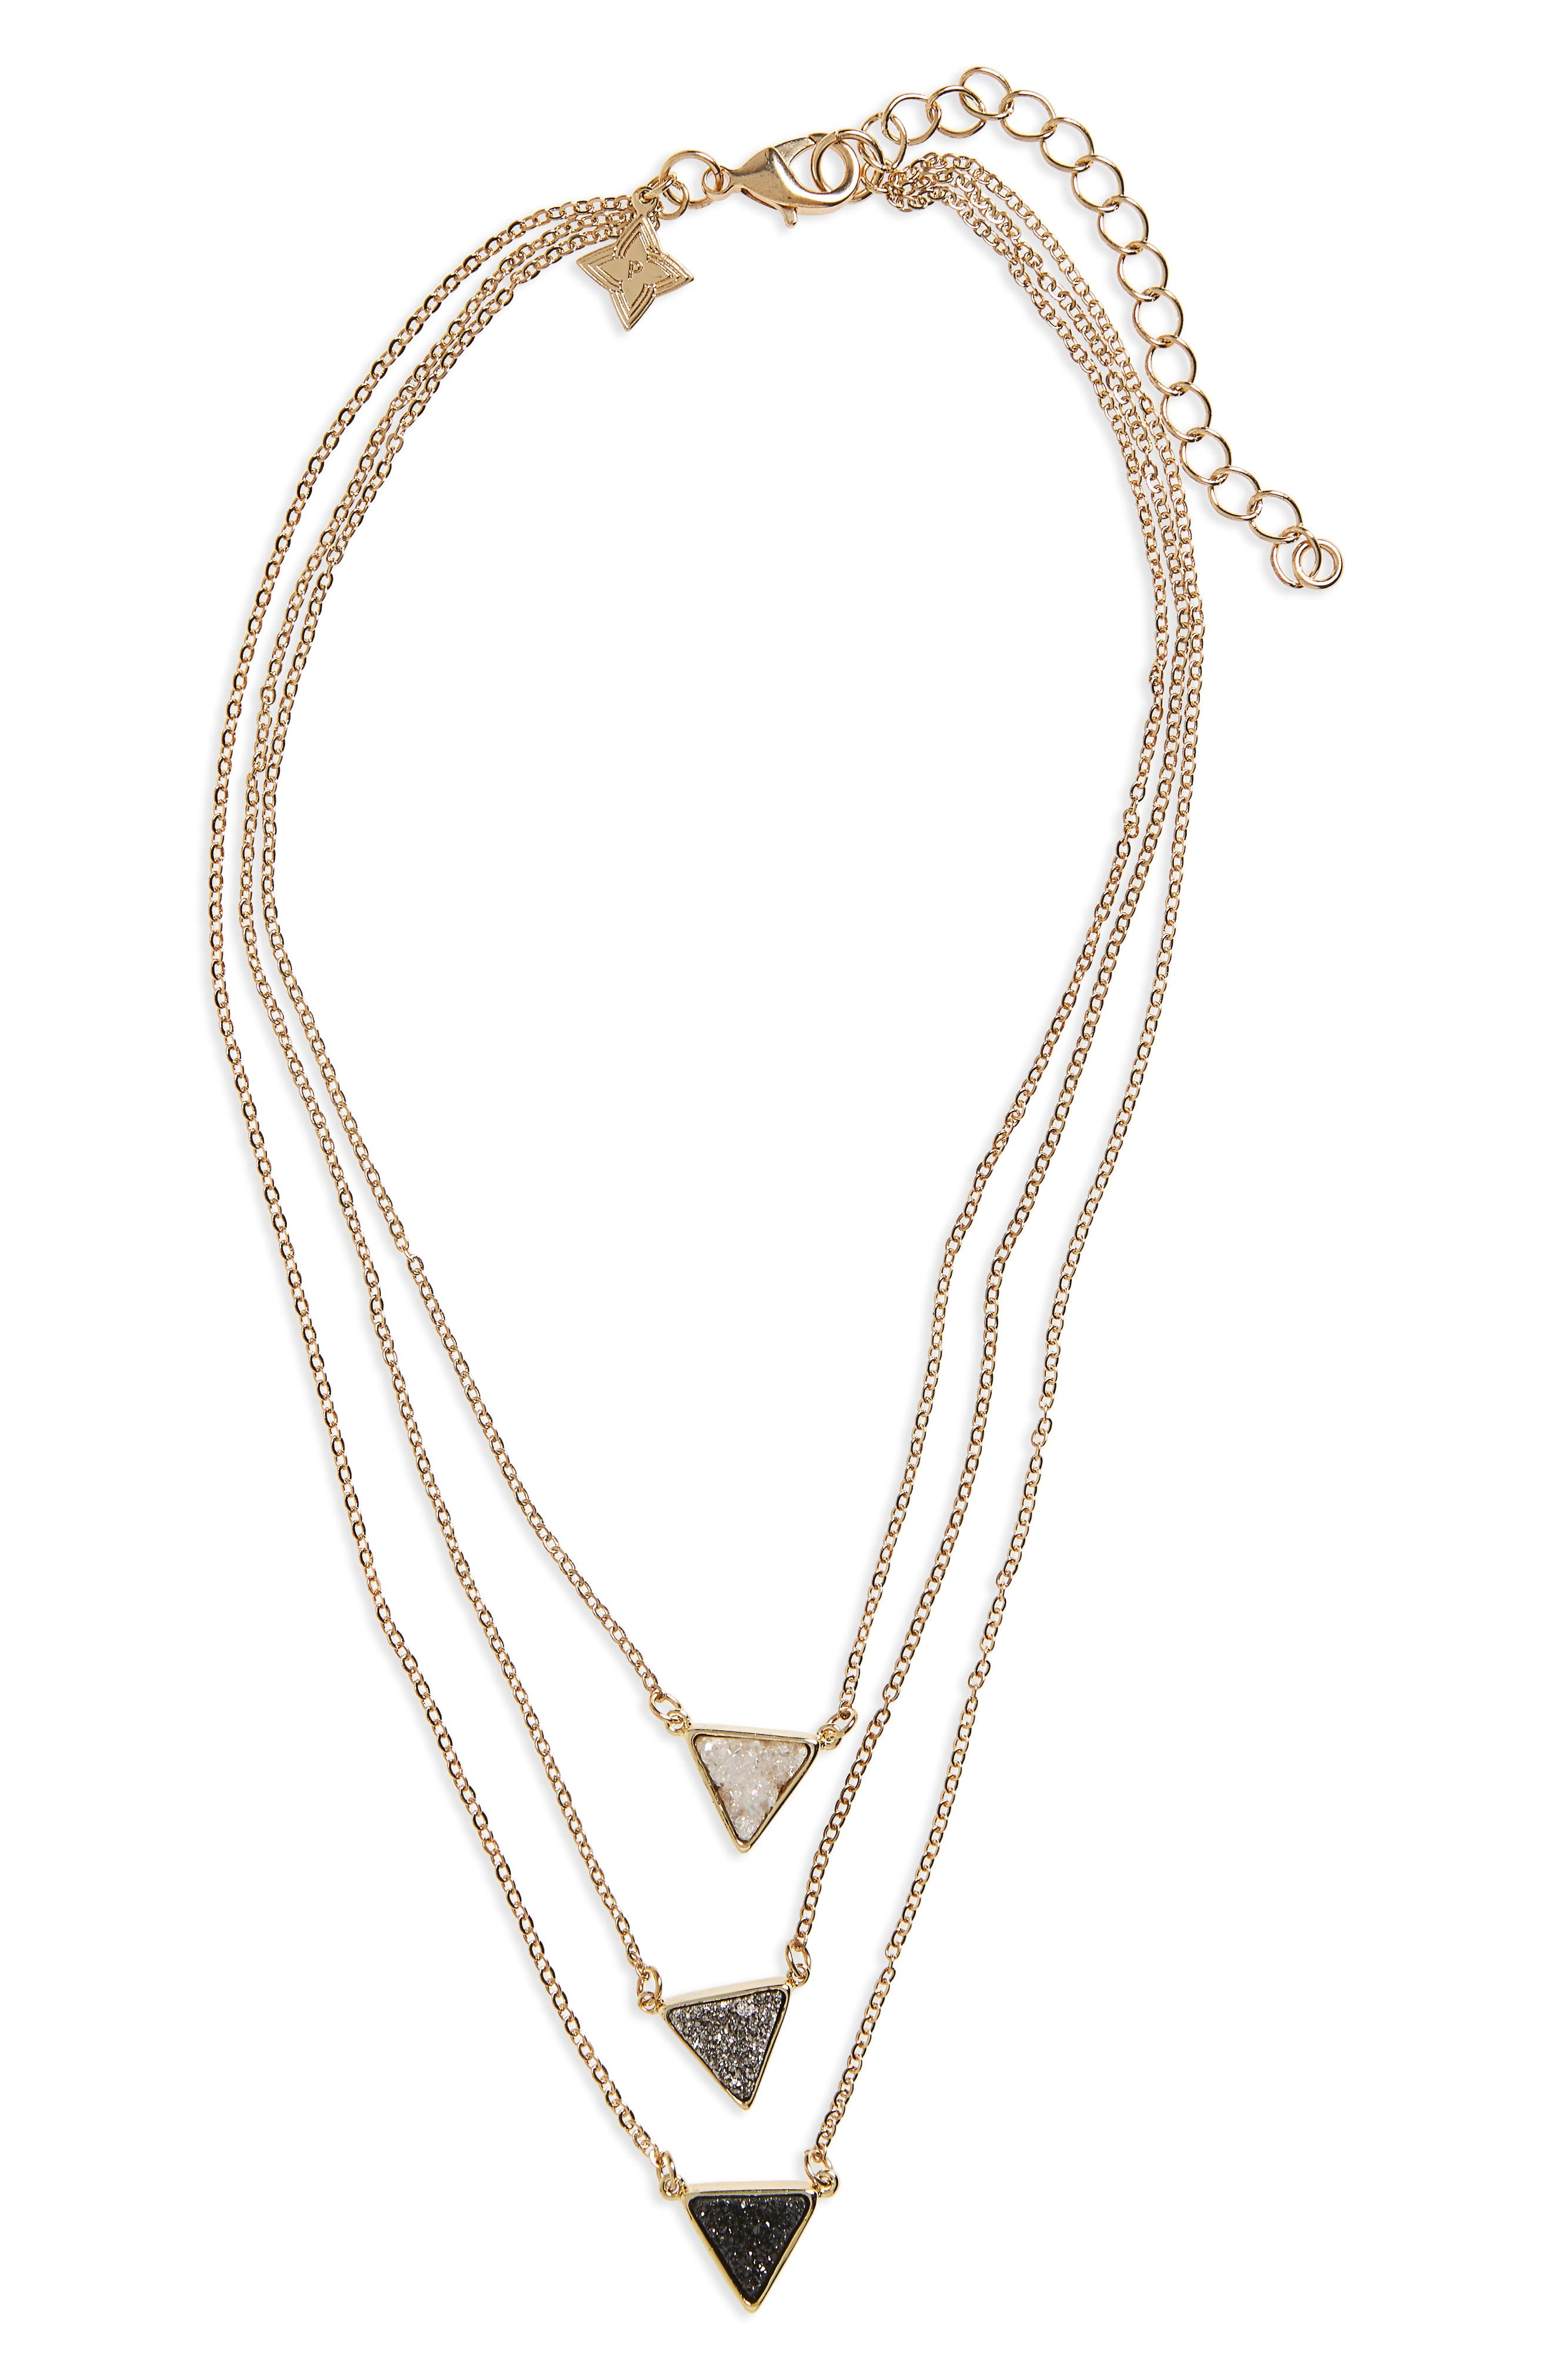 Main Image - Panacea Drusy Multistrand Necklace